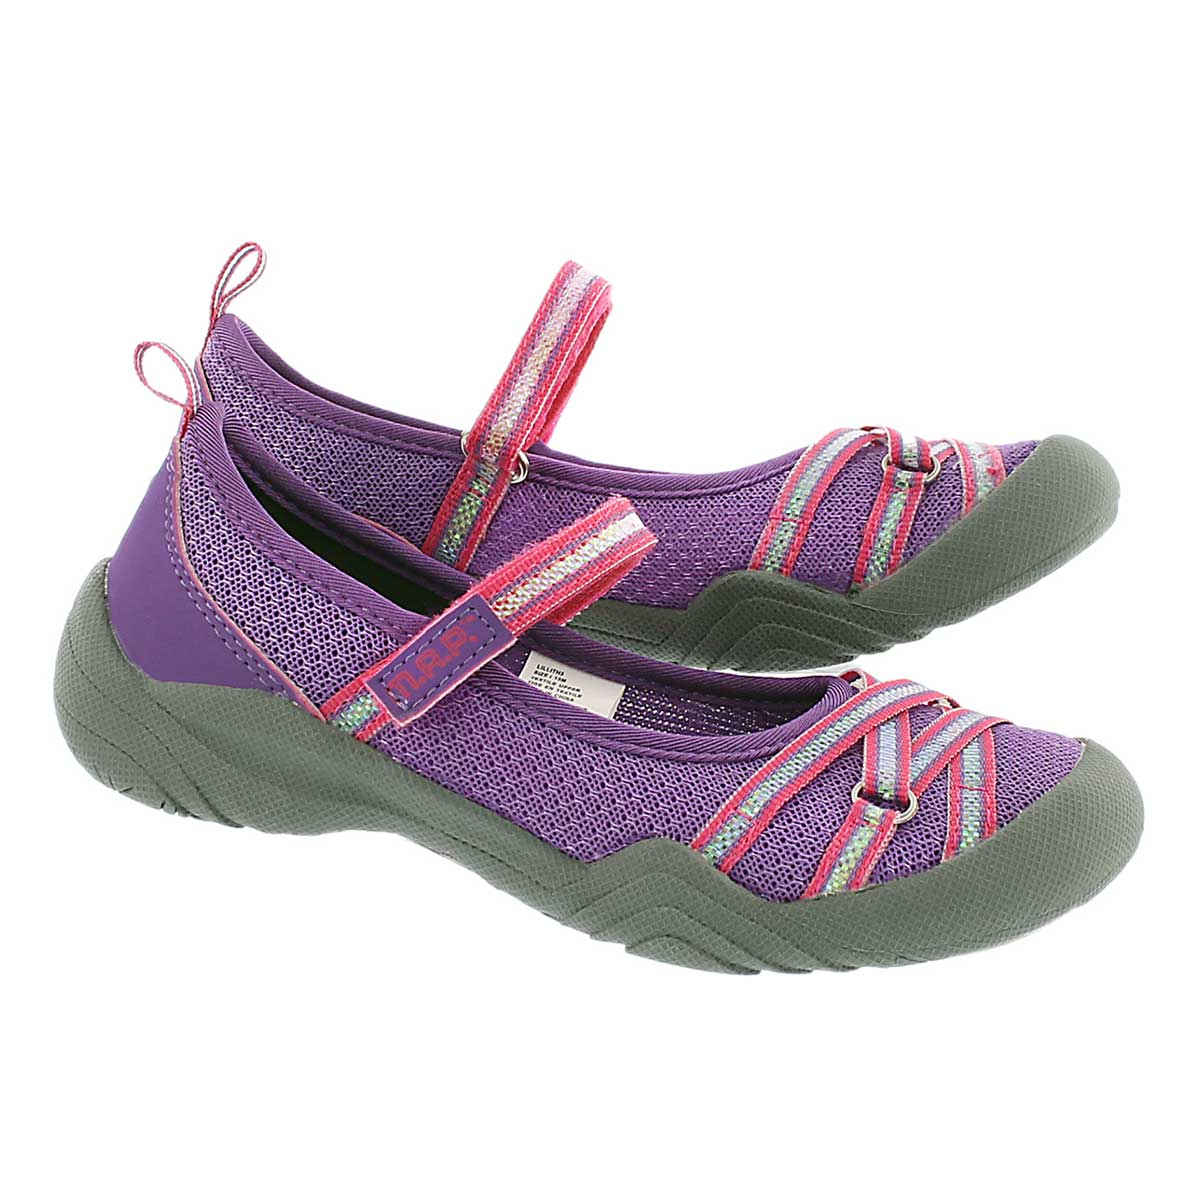 Grl Lilith 3 ppl mary jane casual shoe